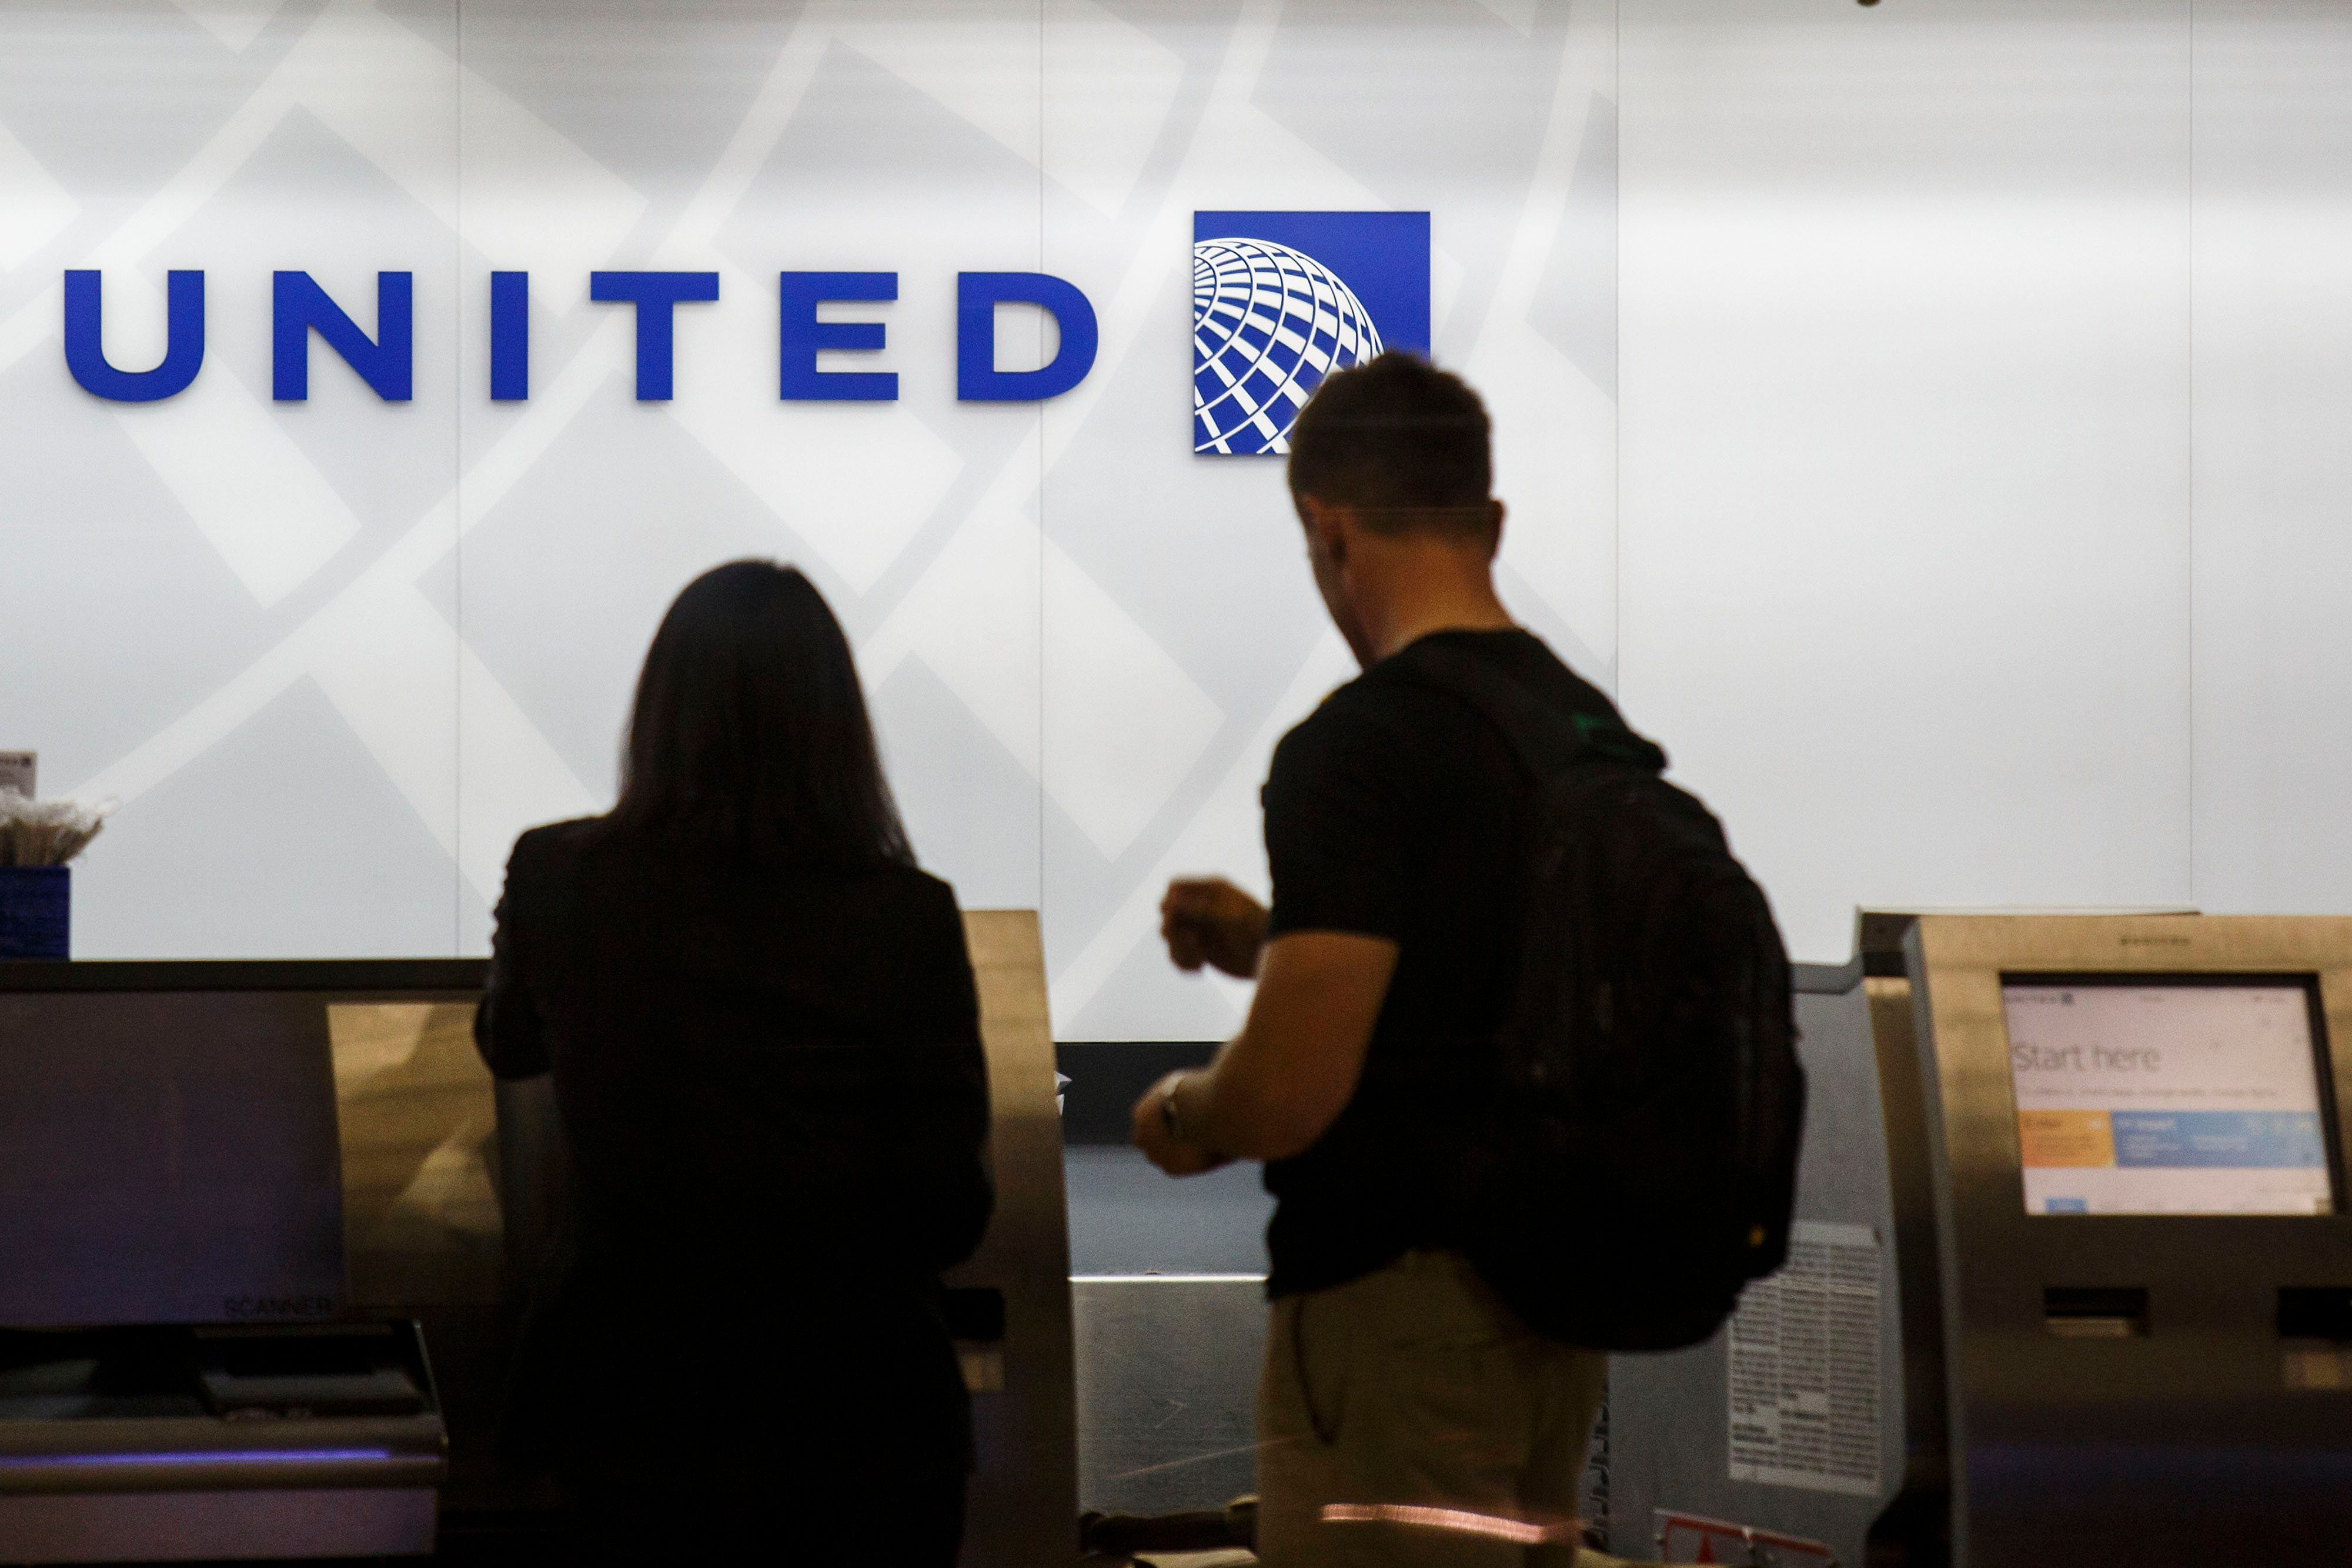 Passengers check-in for flights at United Continental Holdings Inc. Terminal 7 of Los Angeles International Airport (LAX) in Los Angeles, California, U.S., on Tuesday, Aug. 18, 2015. LAX is one of a handful of major U.S. airports where no one carrier dominates -- each of the four biggest airlines now holds market share between 14 percent and 18 percent. Photographer: Patrick T. Fallon/Bloomberg via Getty Images